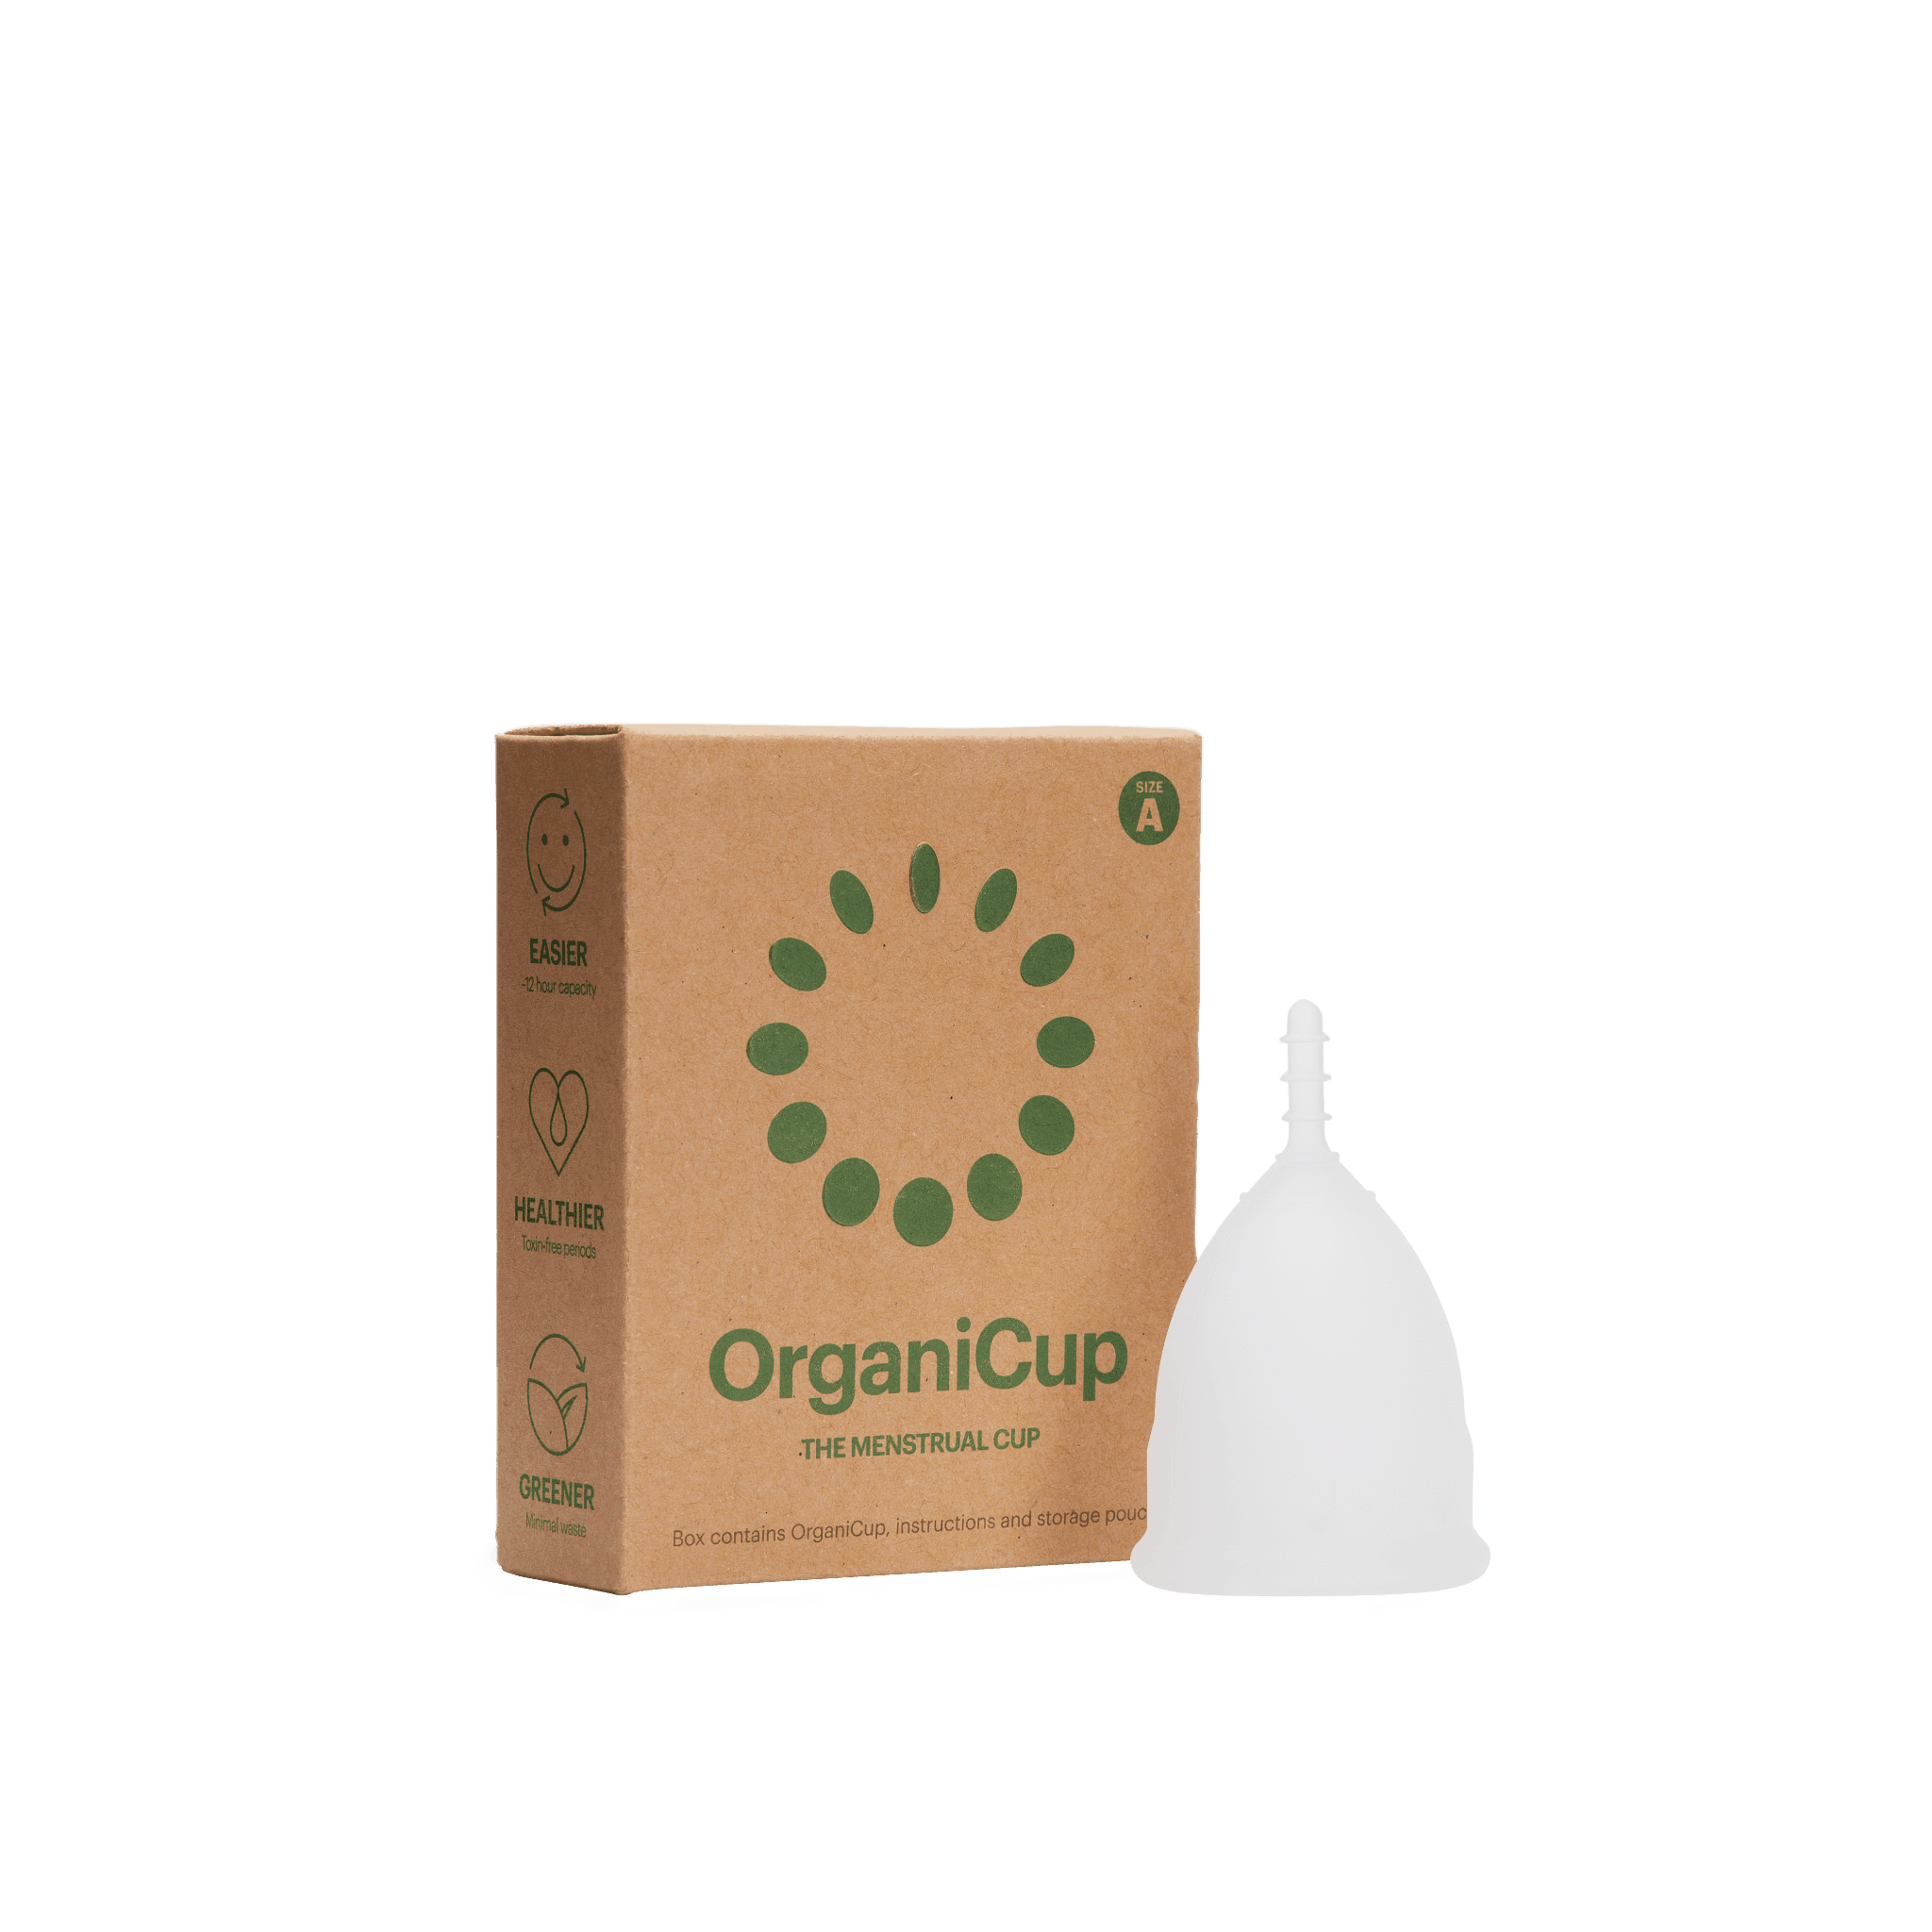 OrganiCup OrganiCup - The Menstrual Cup